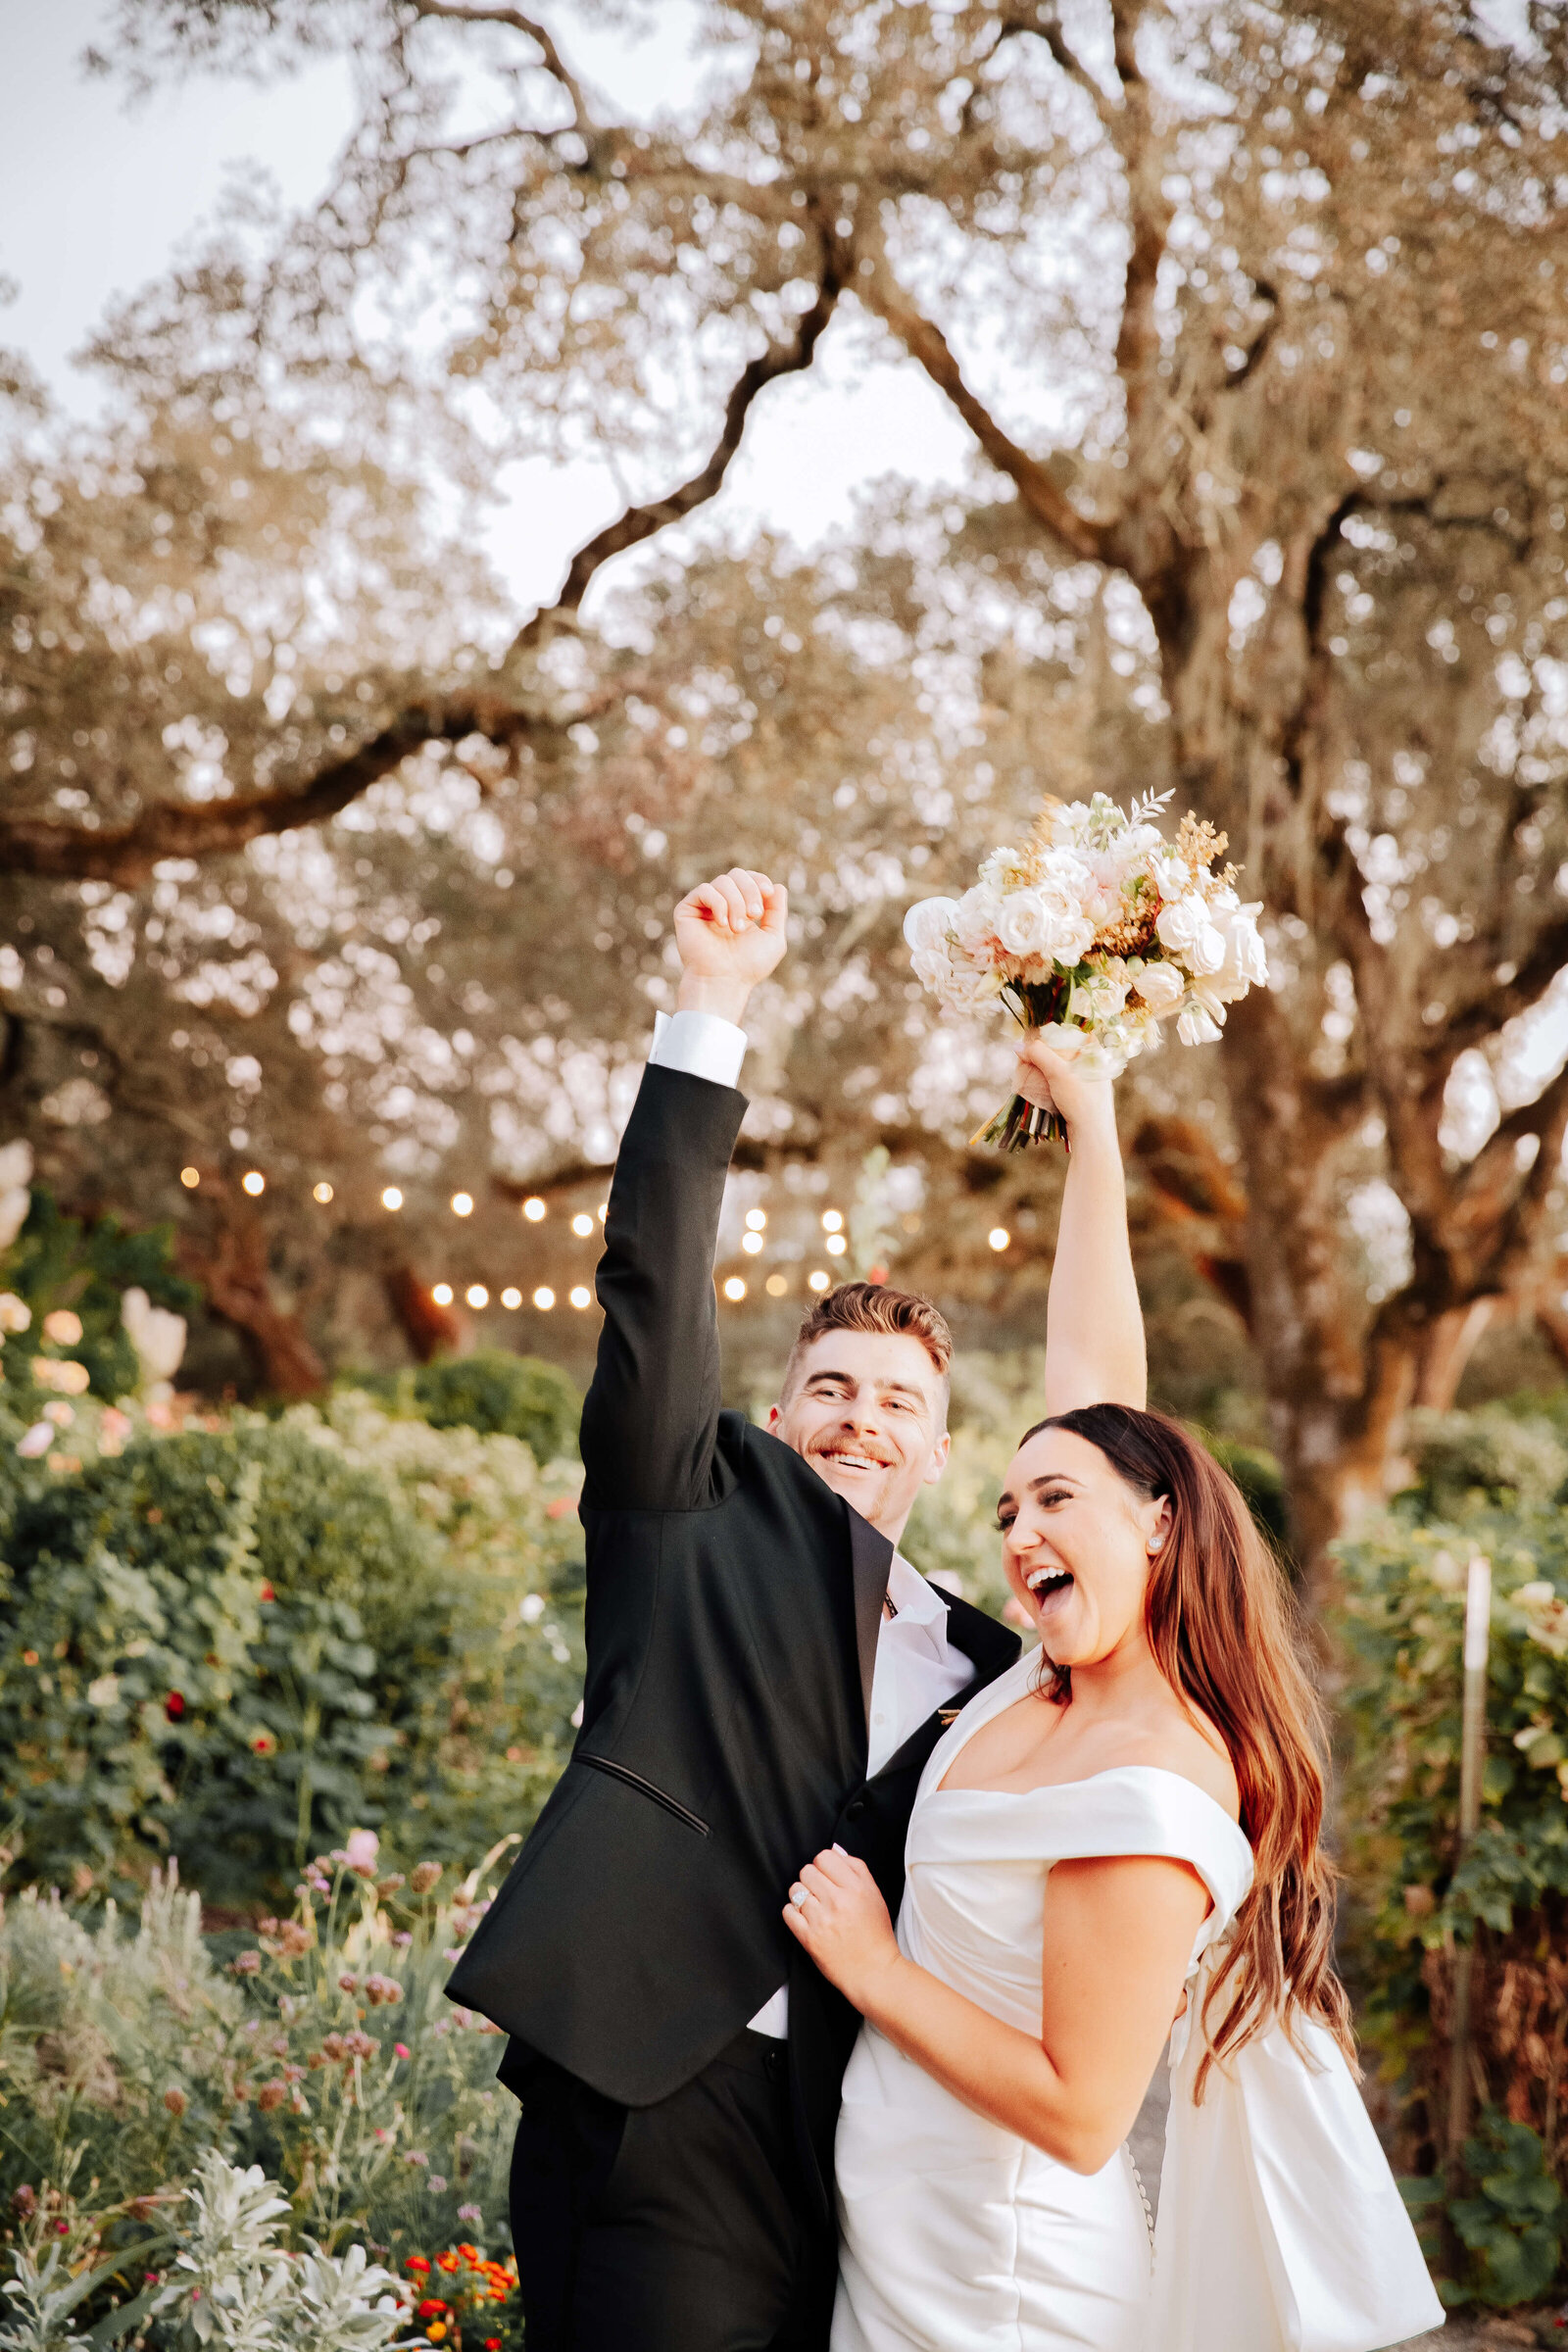 Sonoma-valley-beltane-ranch-california-wedding-events-by-gianna-somona-wedding-planner-19